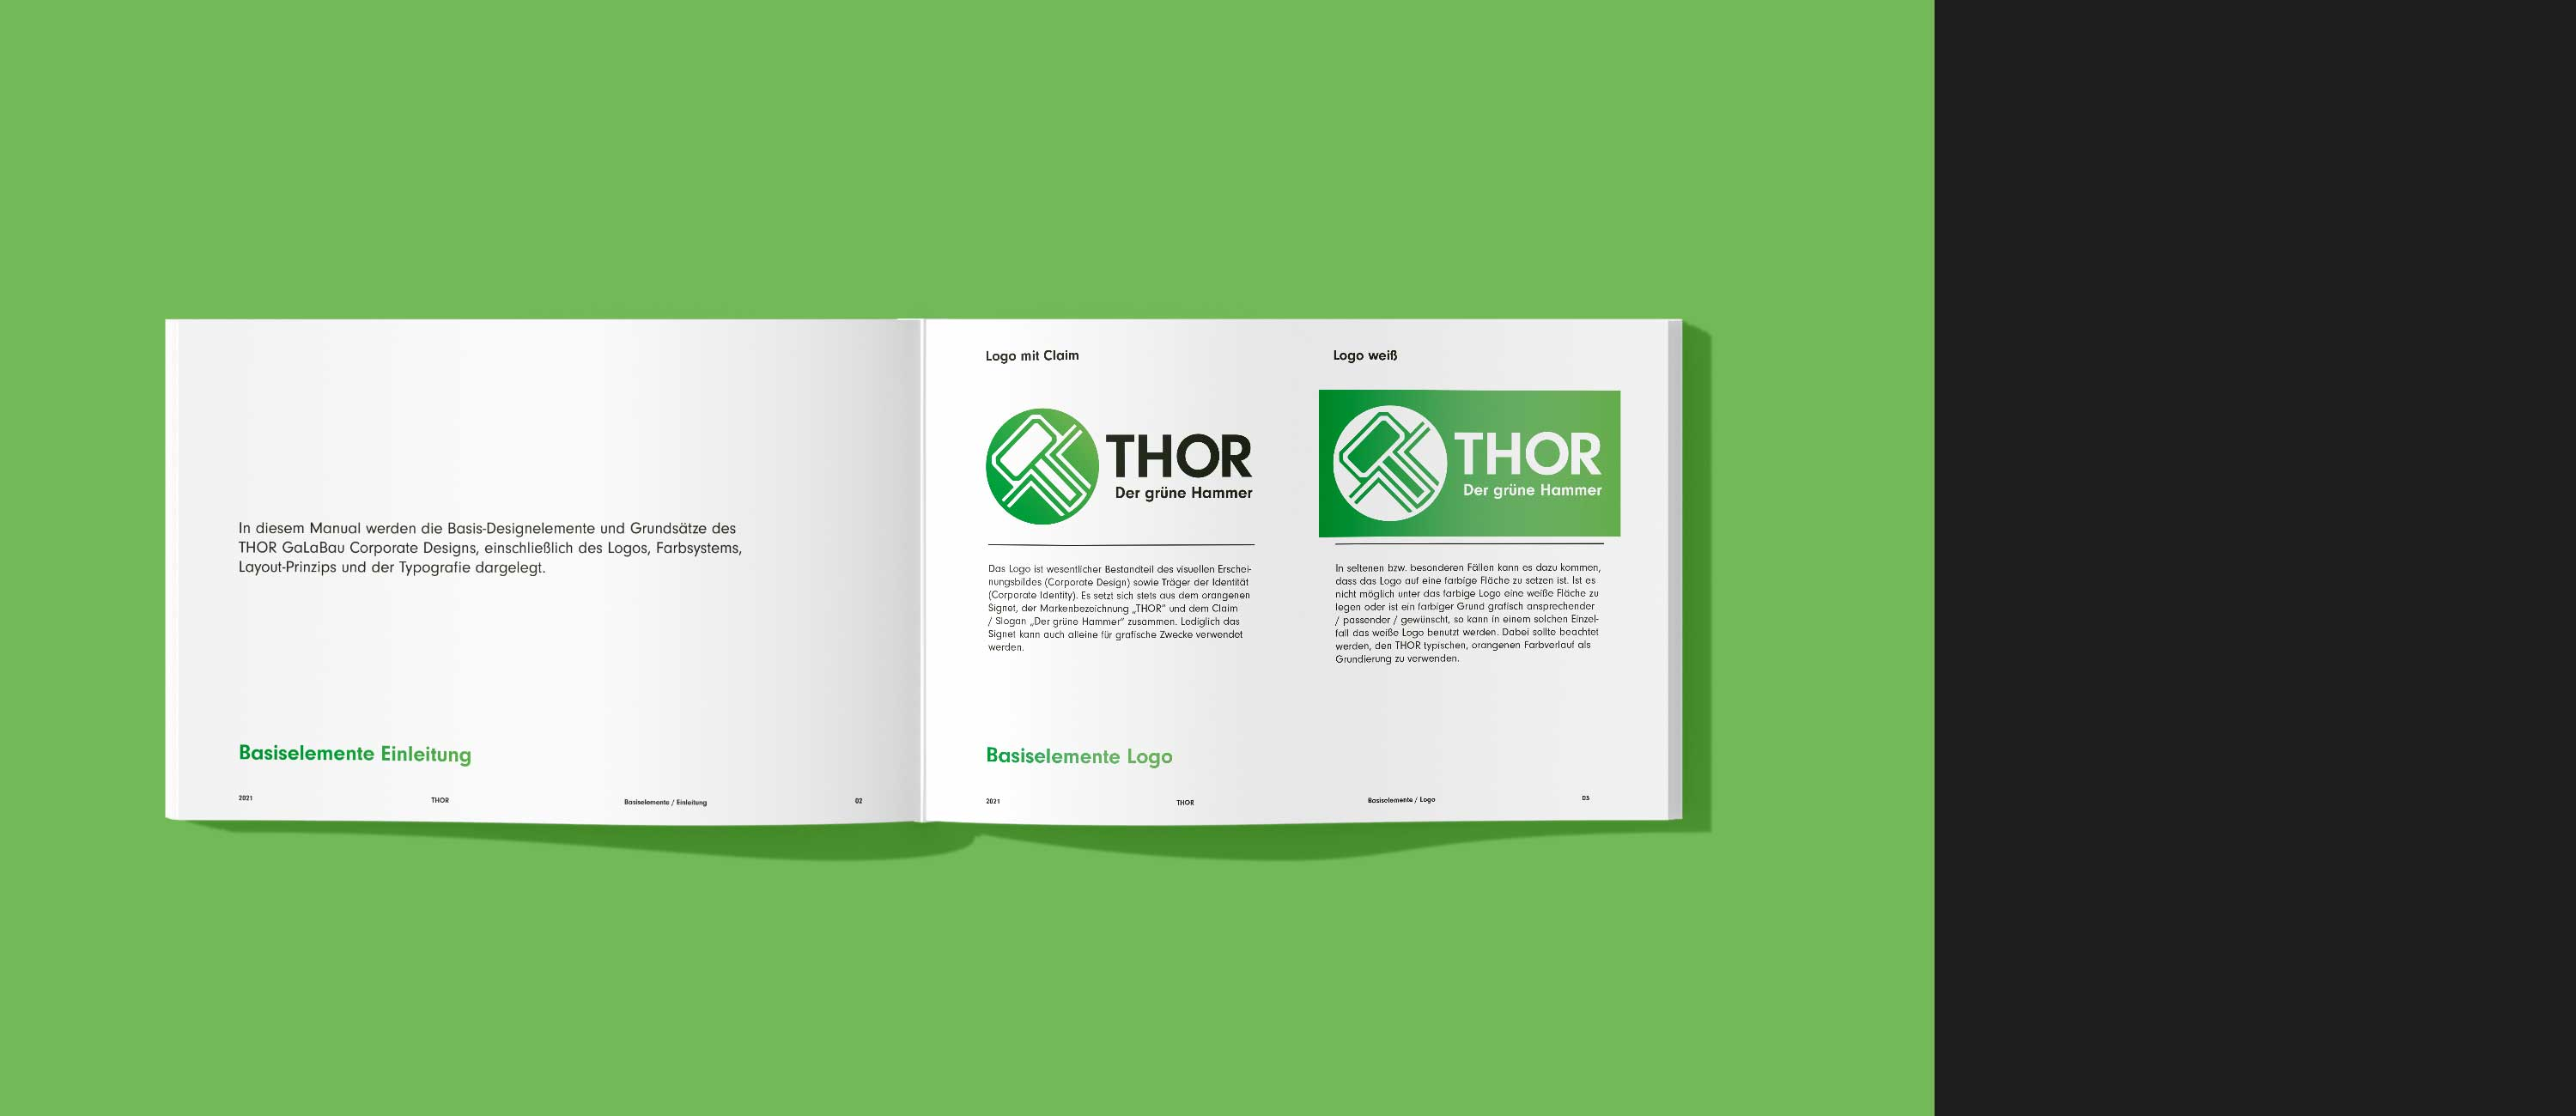 kreativbox - Corporate Design Manual - THOR GaLaBau